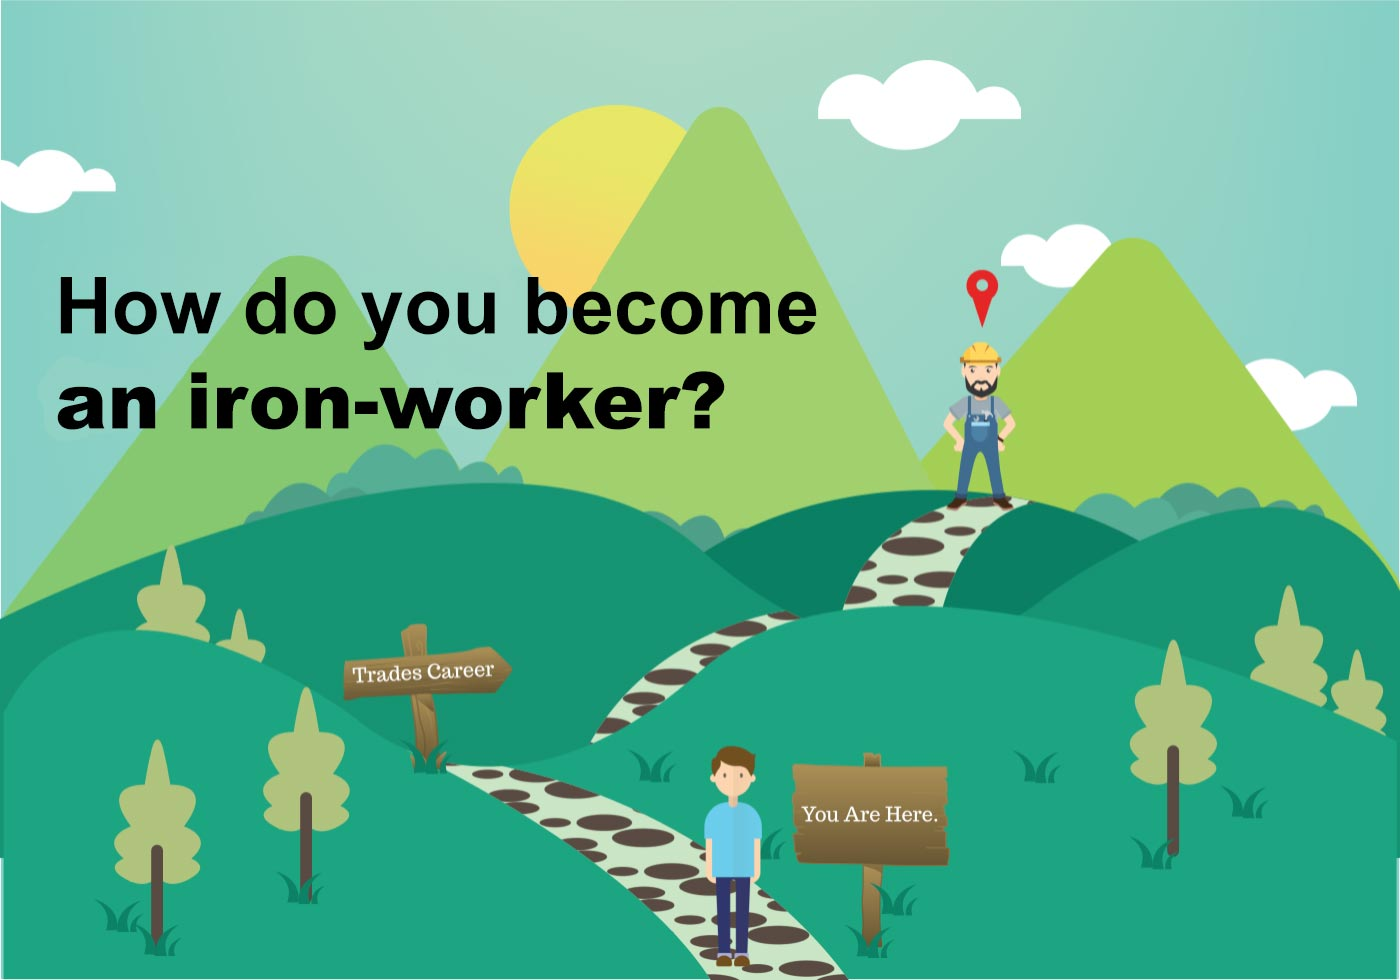 How to become an iron-worker